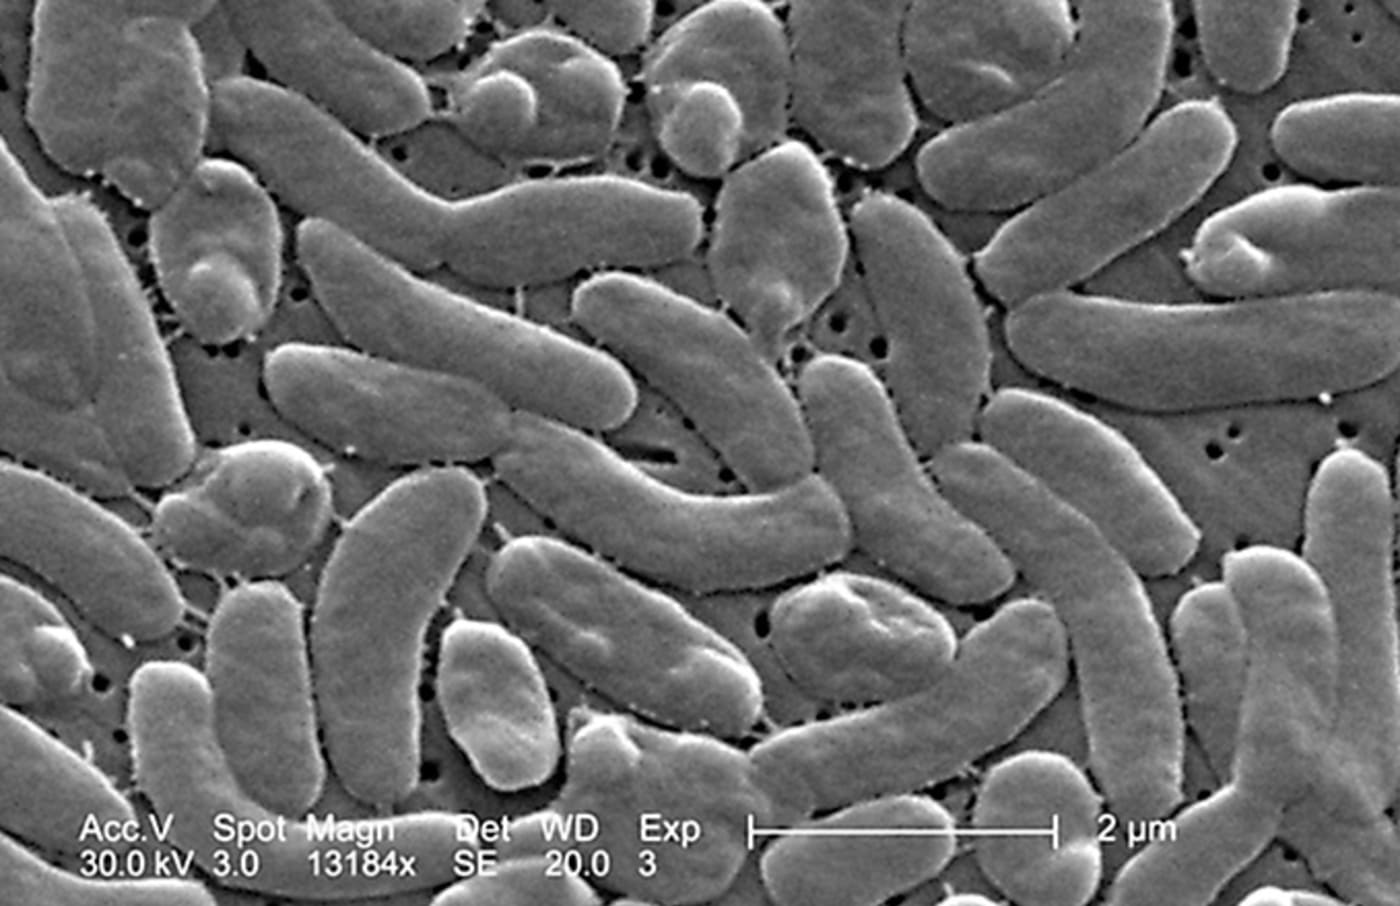 This is a photo of bacteria